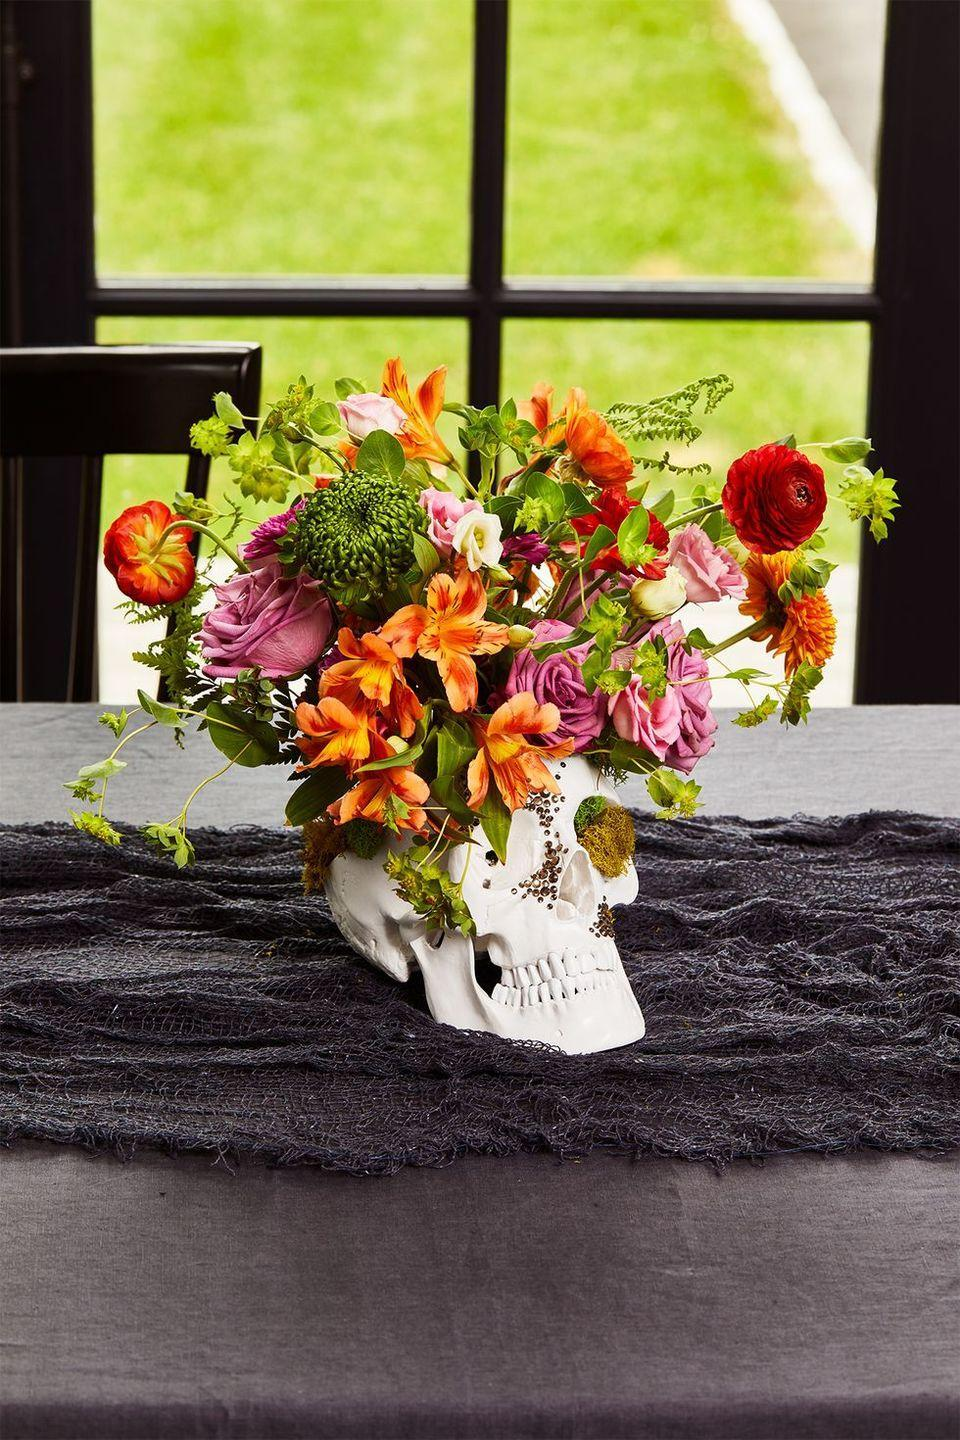 """<p>Give your Halloween table an otherworldly touch that would make Morticia Addams proud. Put a cup inside of a faux skull (make sure it has a removable top), then use tape to create a grid on its rim. This will help your flowers and greenery to stay put. Fill ⅔ with water and place your large flowers and greenery in the grid. Complete the arrangement by adding your delicate flowers. To help your floral centerpiece last longer, be sure to remove any leaves or extra stems that sit below the water line.</p><p><a class=""""link rapid-noclick-resp"""" href=""""https://www.amazon.com/gp/product/B00RLTKCPQ?tag=syn-yahoo-20&ascsubtag=%5Bartid%7C10055.g.421%5Bsrc%7Cyahoo-us"""" rel=""""nofollow noopener"""" target=""""_blank"""" data-ylk=""""slk:SHOP FAUX SKULL"""">SHOP FAUX SKULL</a></p>"""